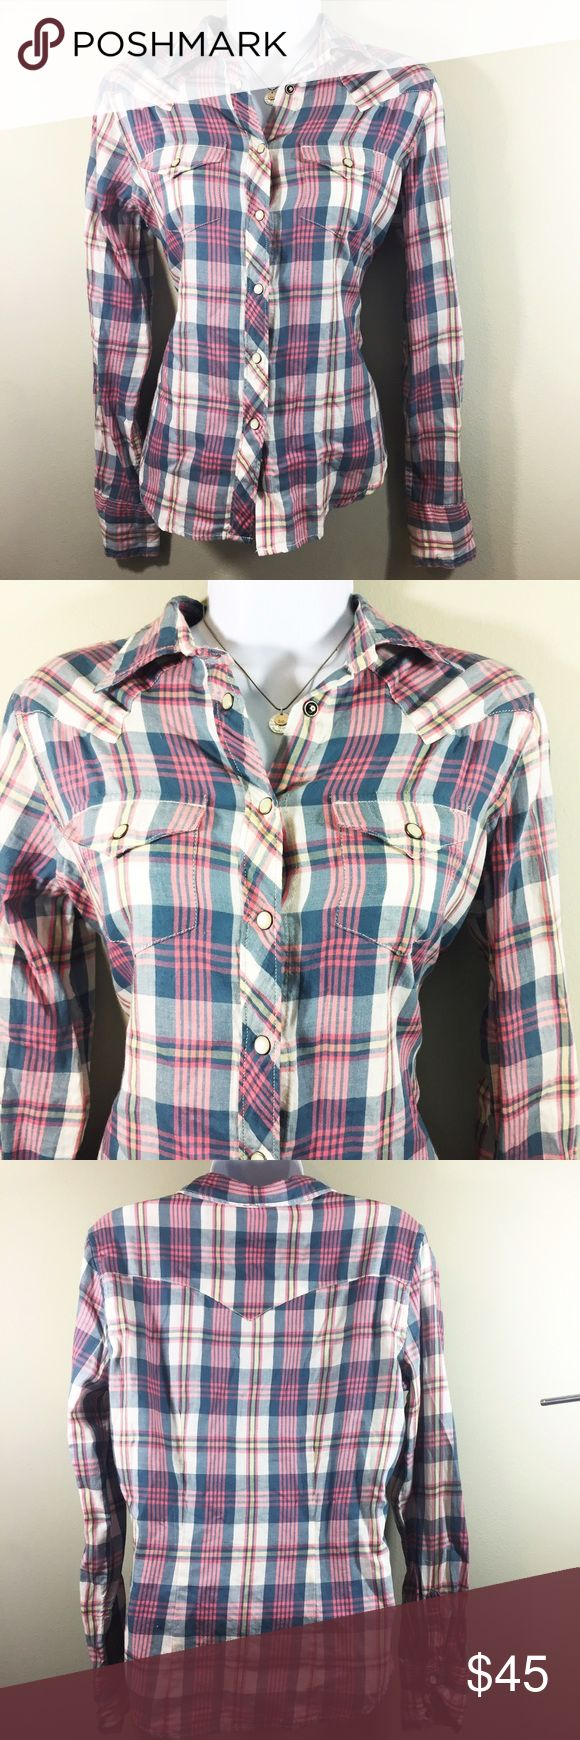 Ralph Lauren Denim and Supply Pearl Snap Plaid Ralph Lauren Denim and Supply RL Cowgirl. Plaid Button up. Pearl snaps. Denim & Supply Ralph Lauren Tops Button Down Shirts